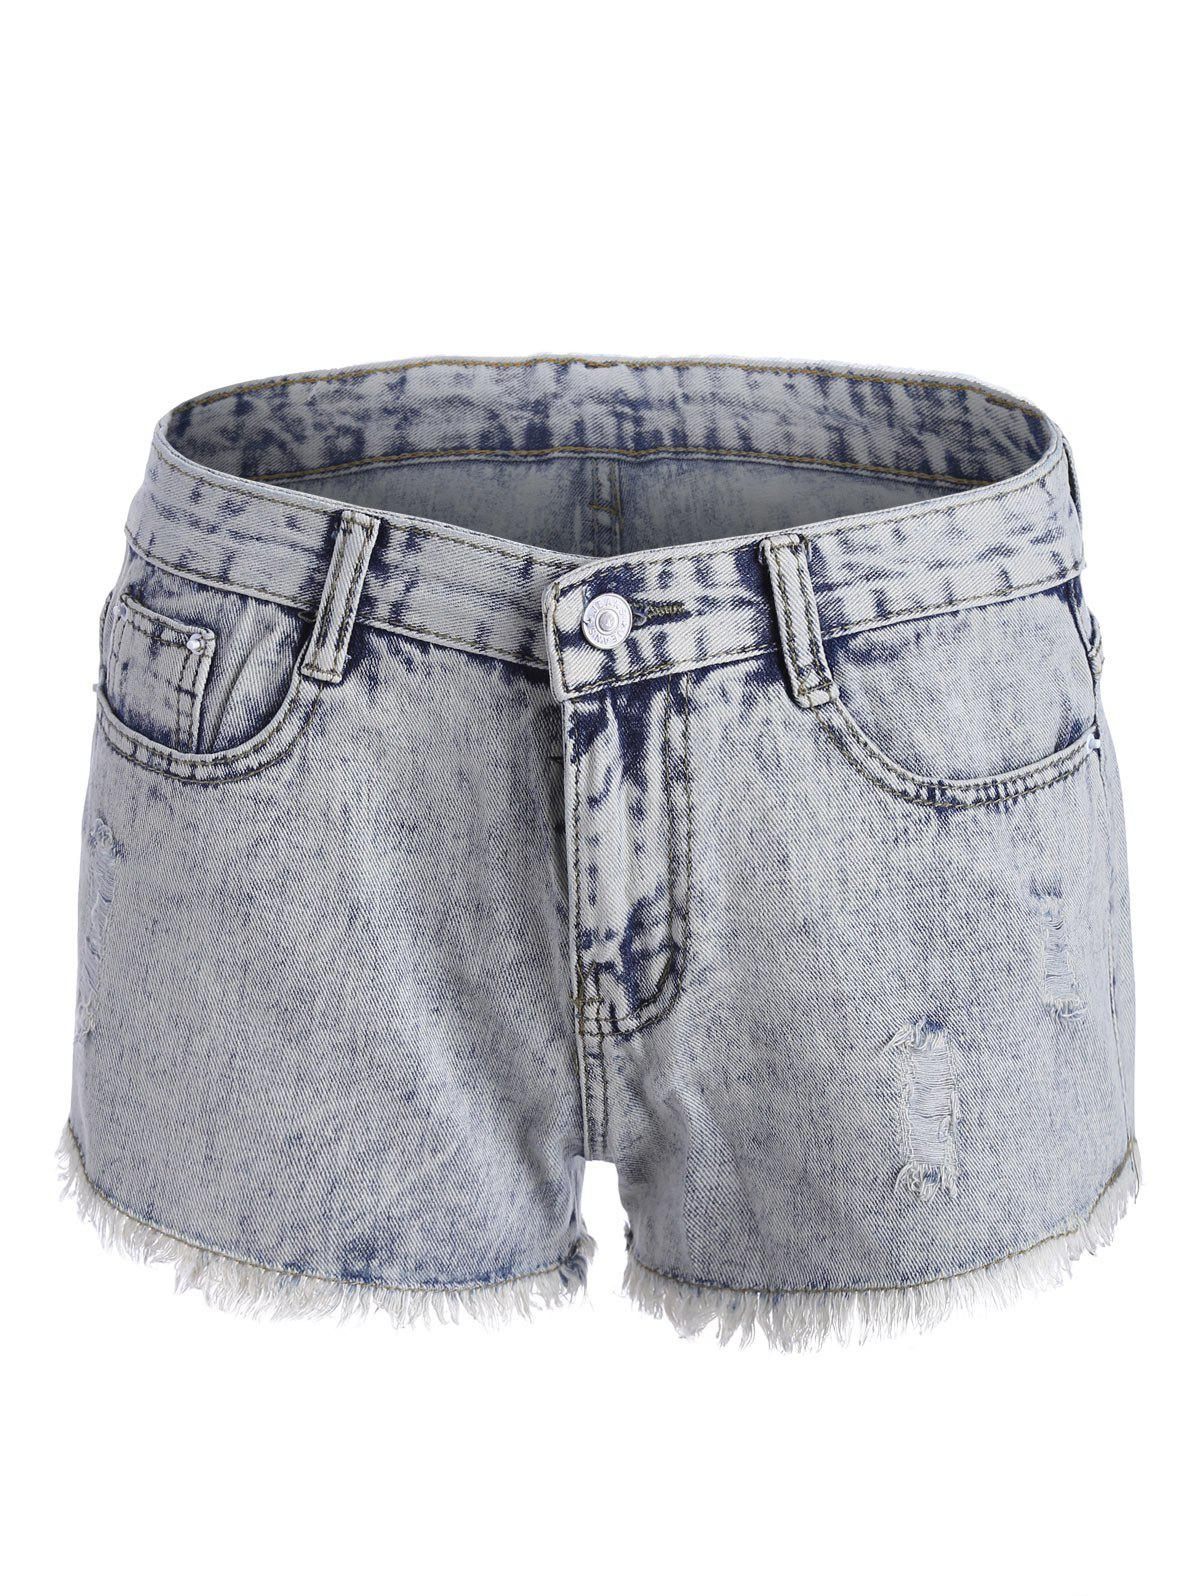 Ripped Curved Hem Denim Shorts - COLORMIX XL